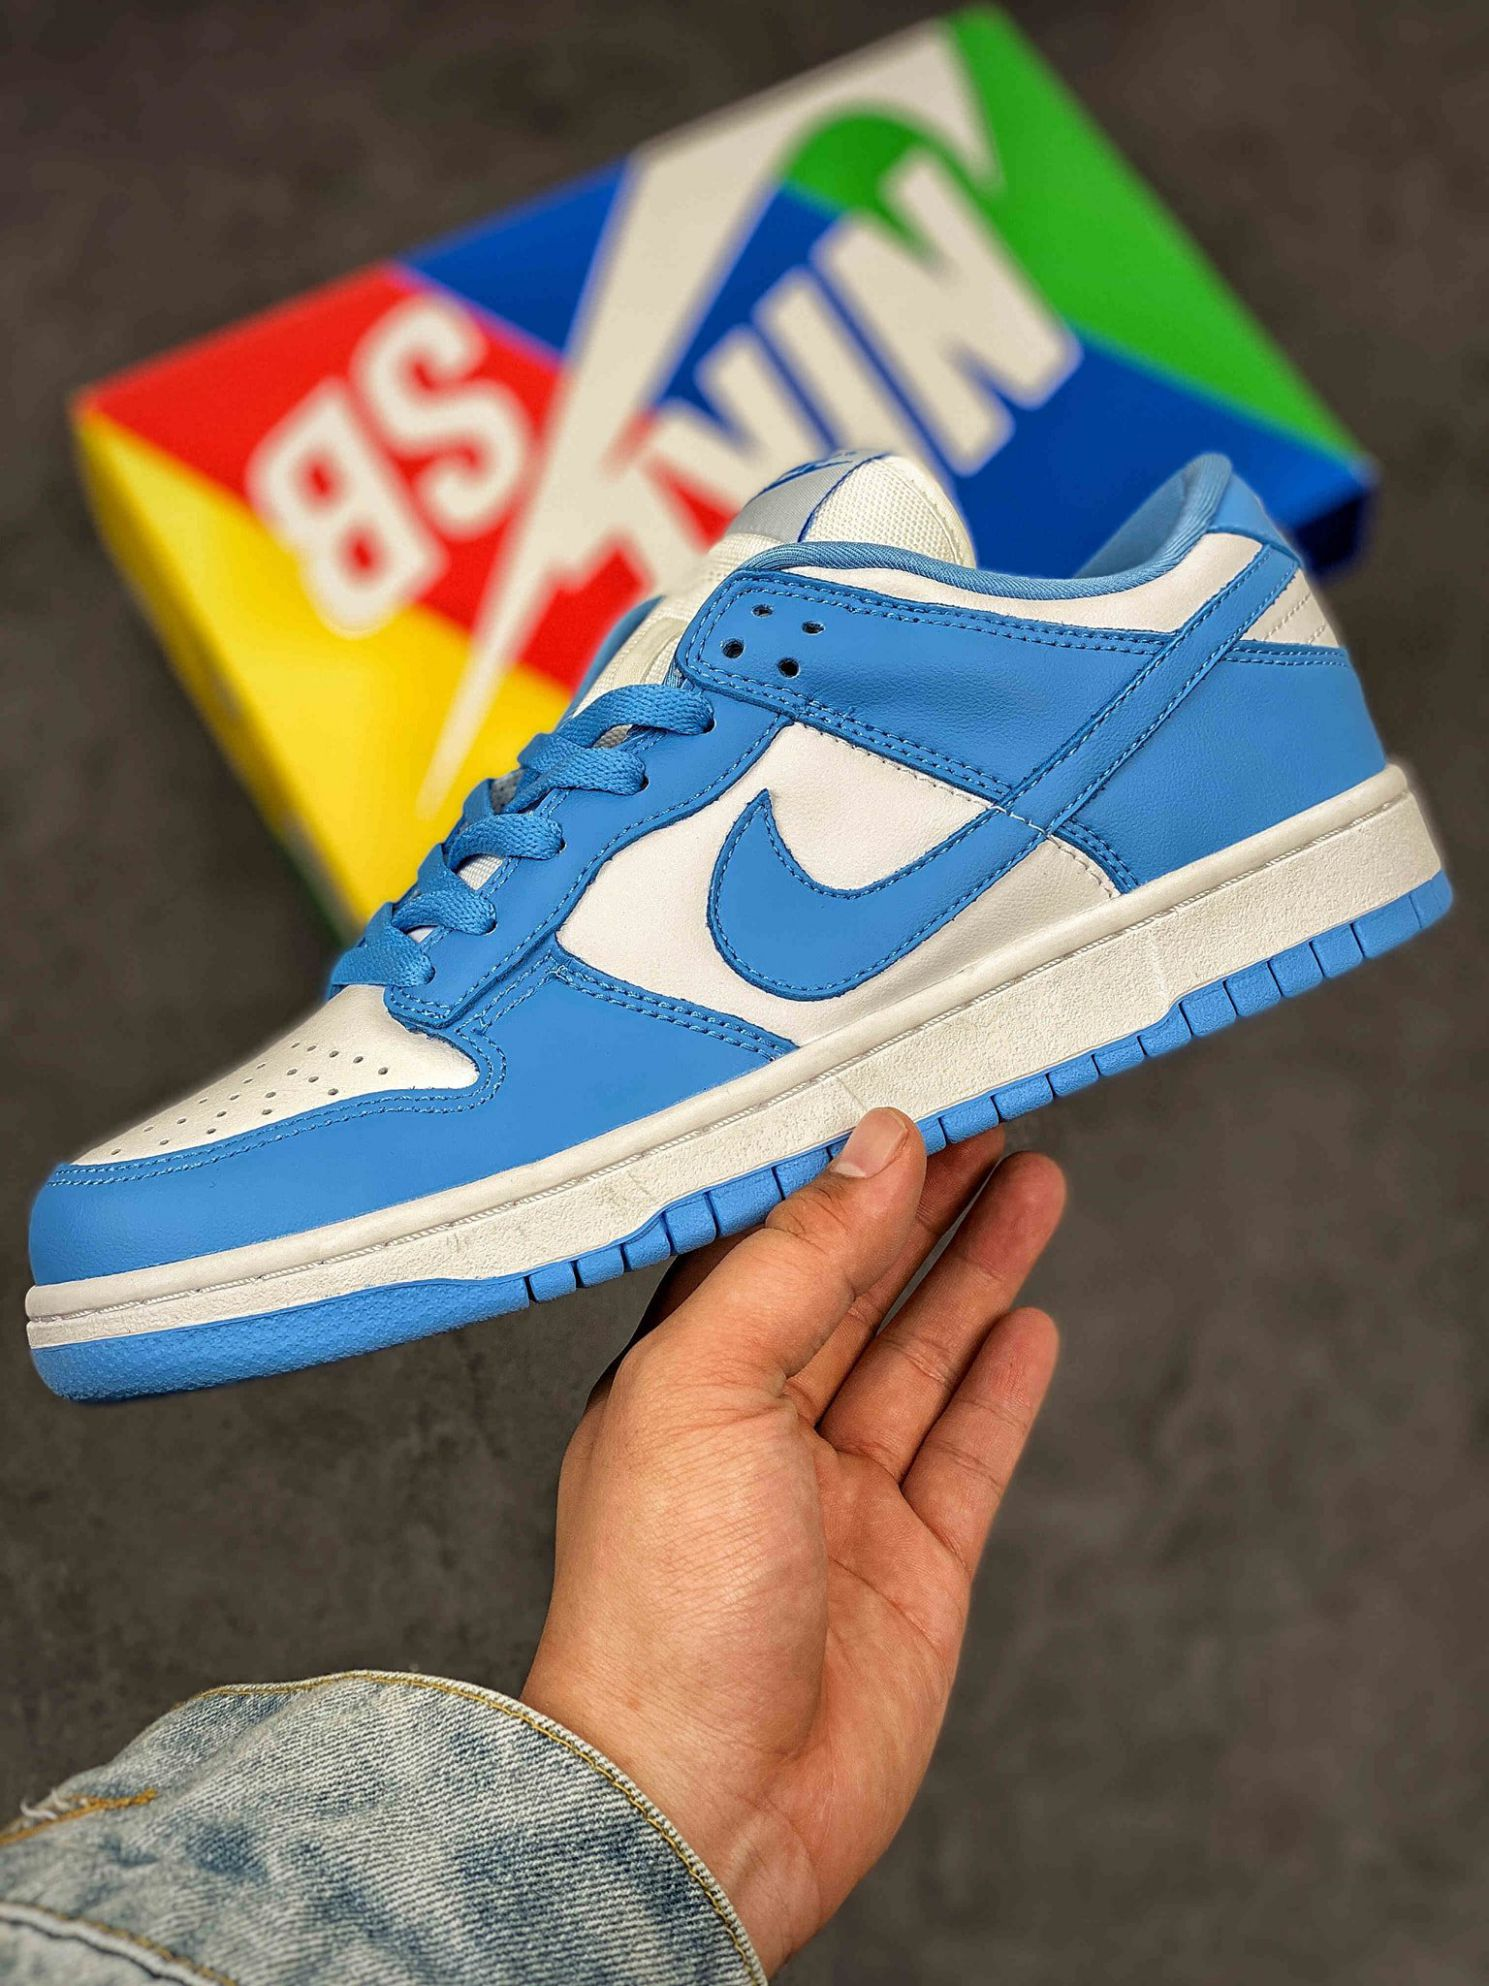 Nike Dunk Low UNC 2021 Rep 1:1